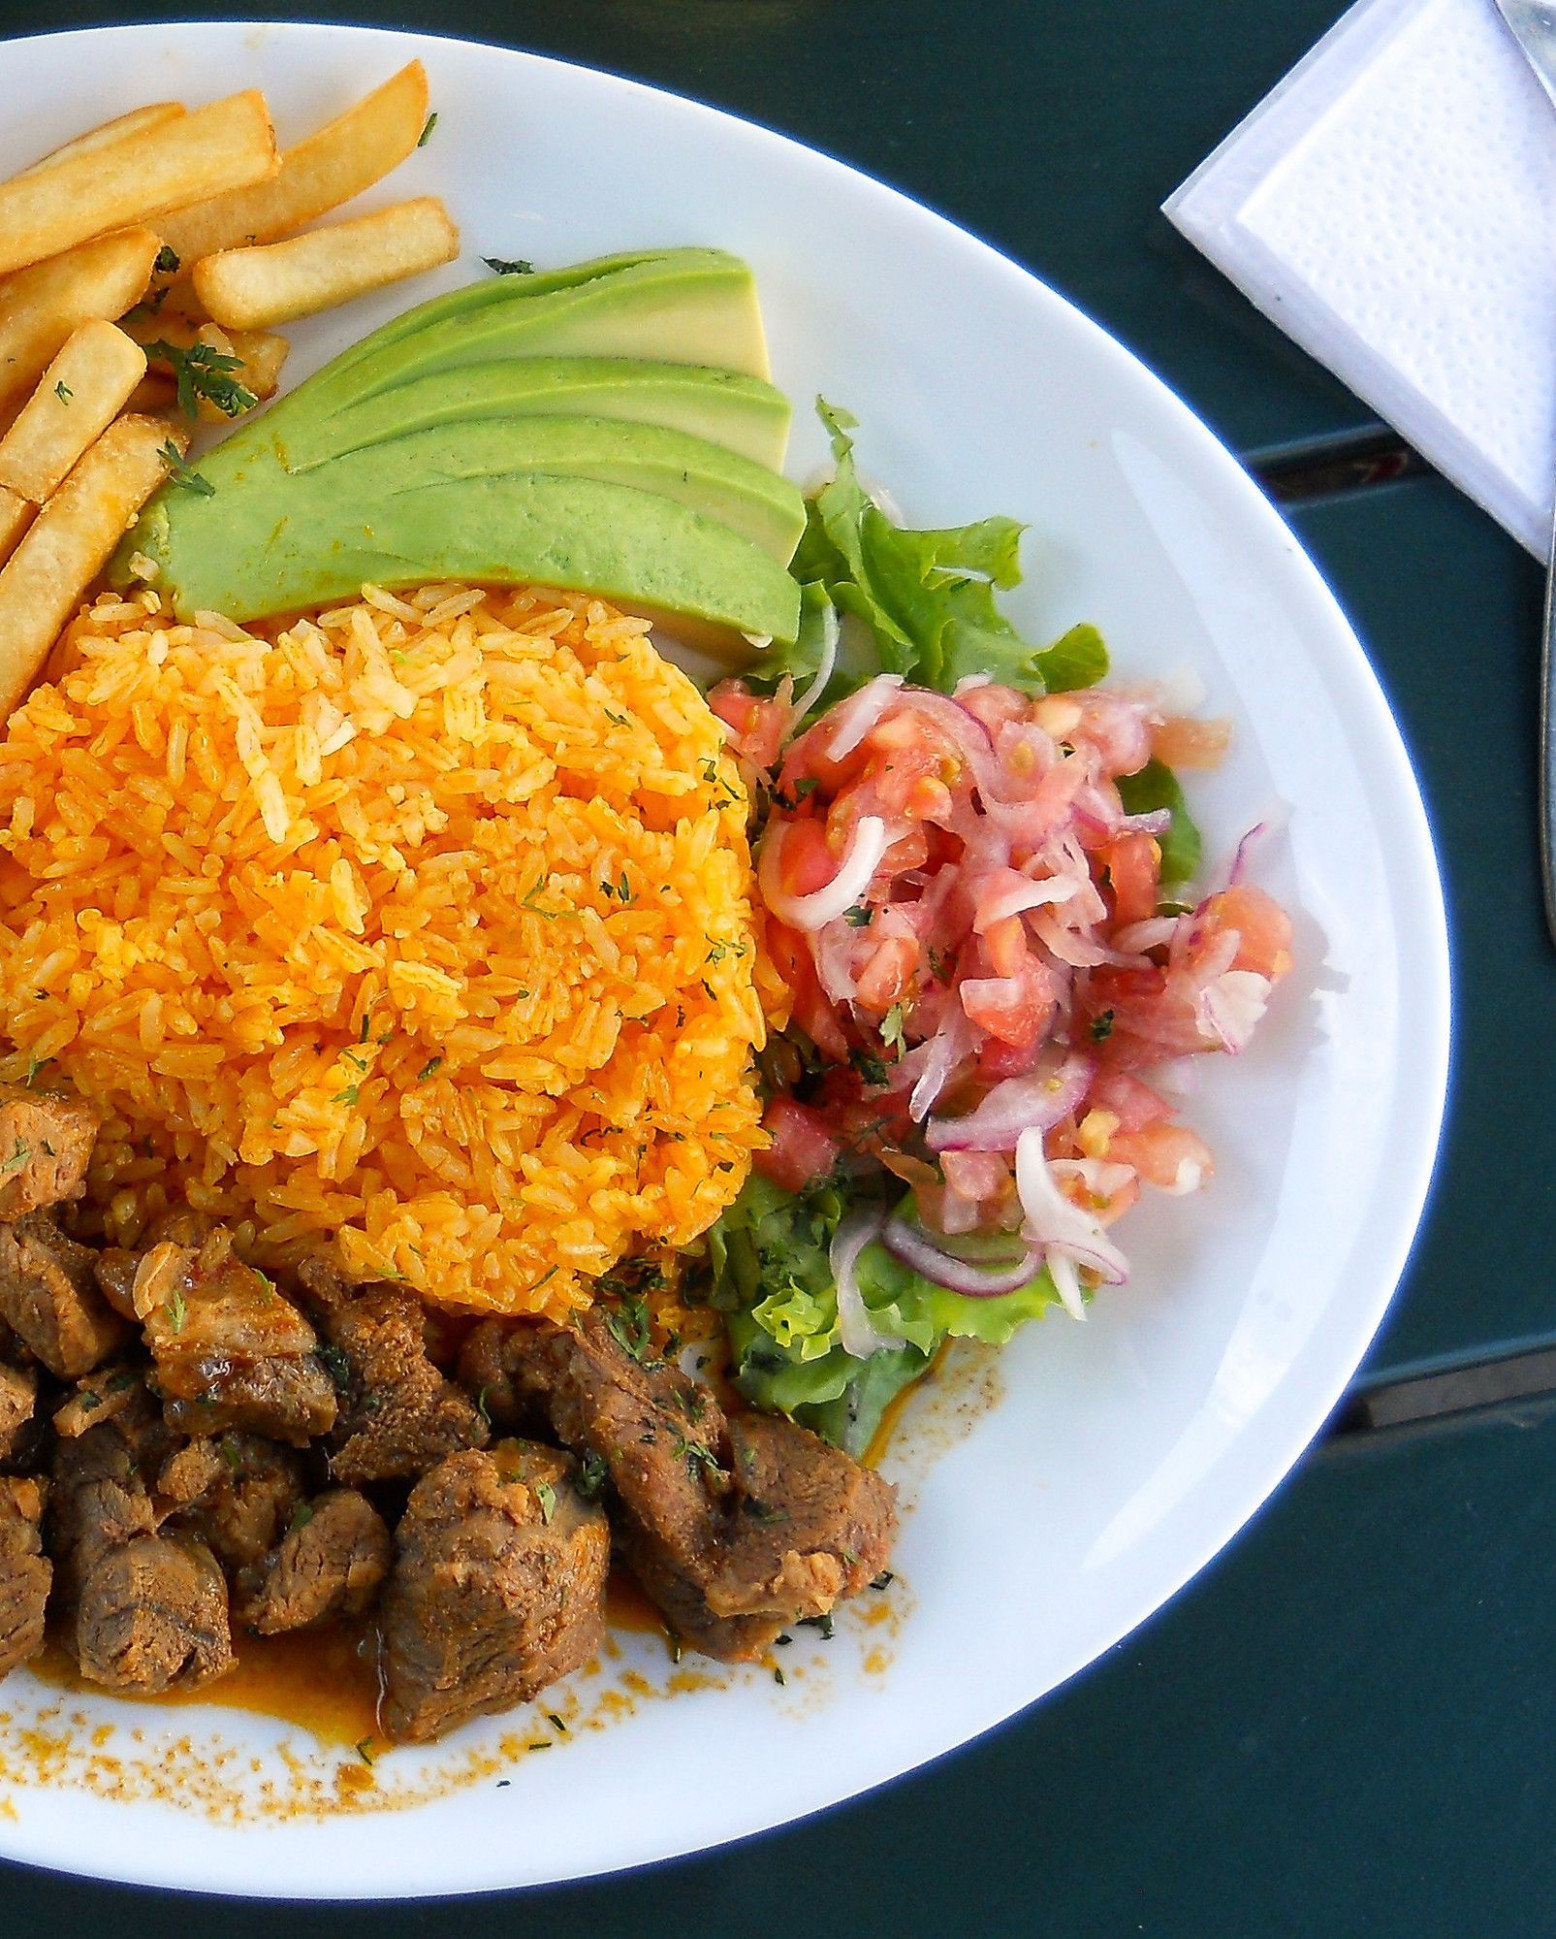 Seco De Chivo Is A Goat Stew And Just One Of Many Ecuadorian ..